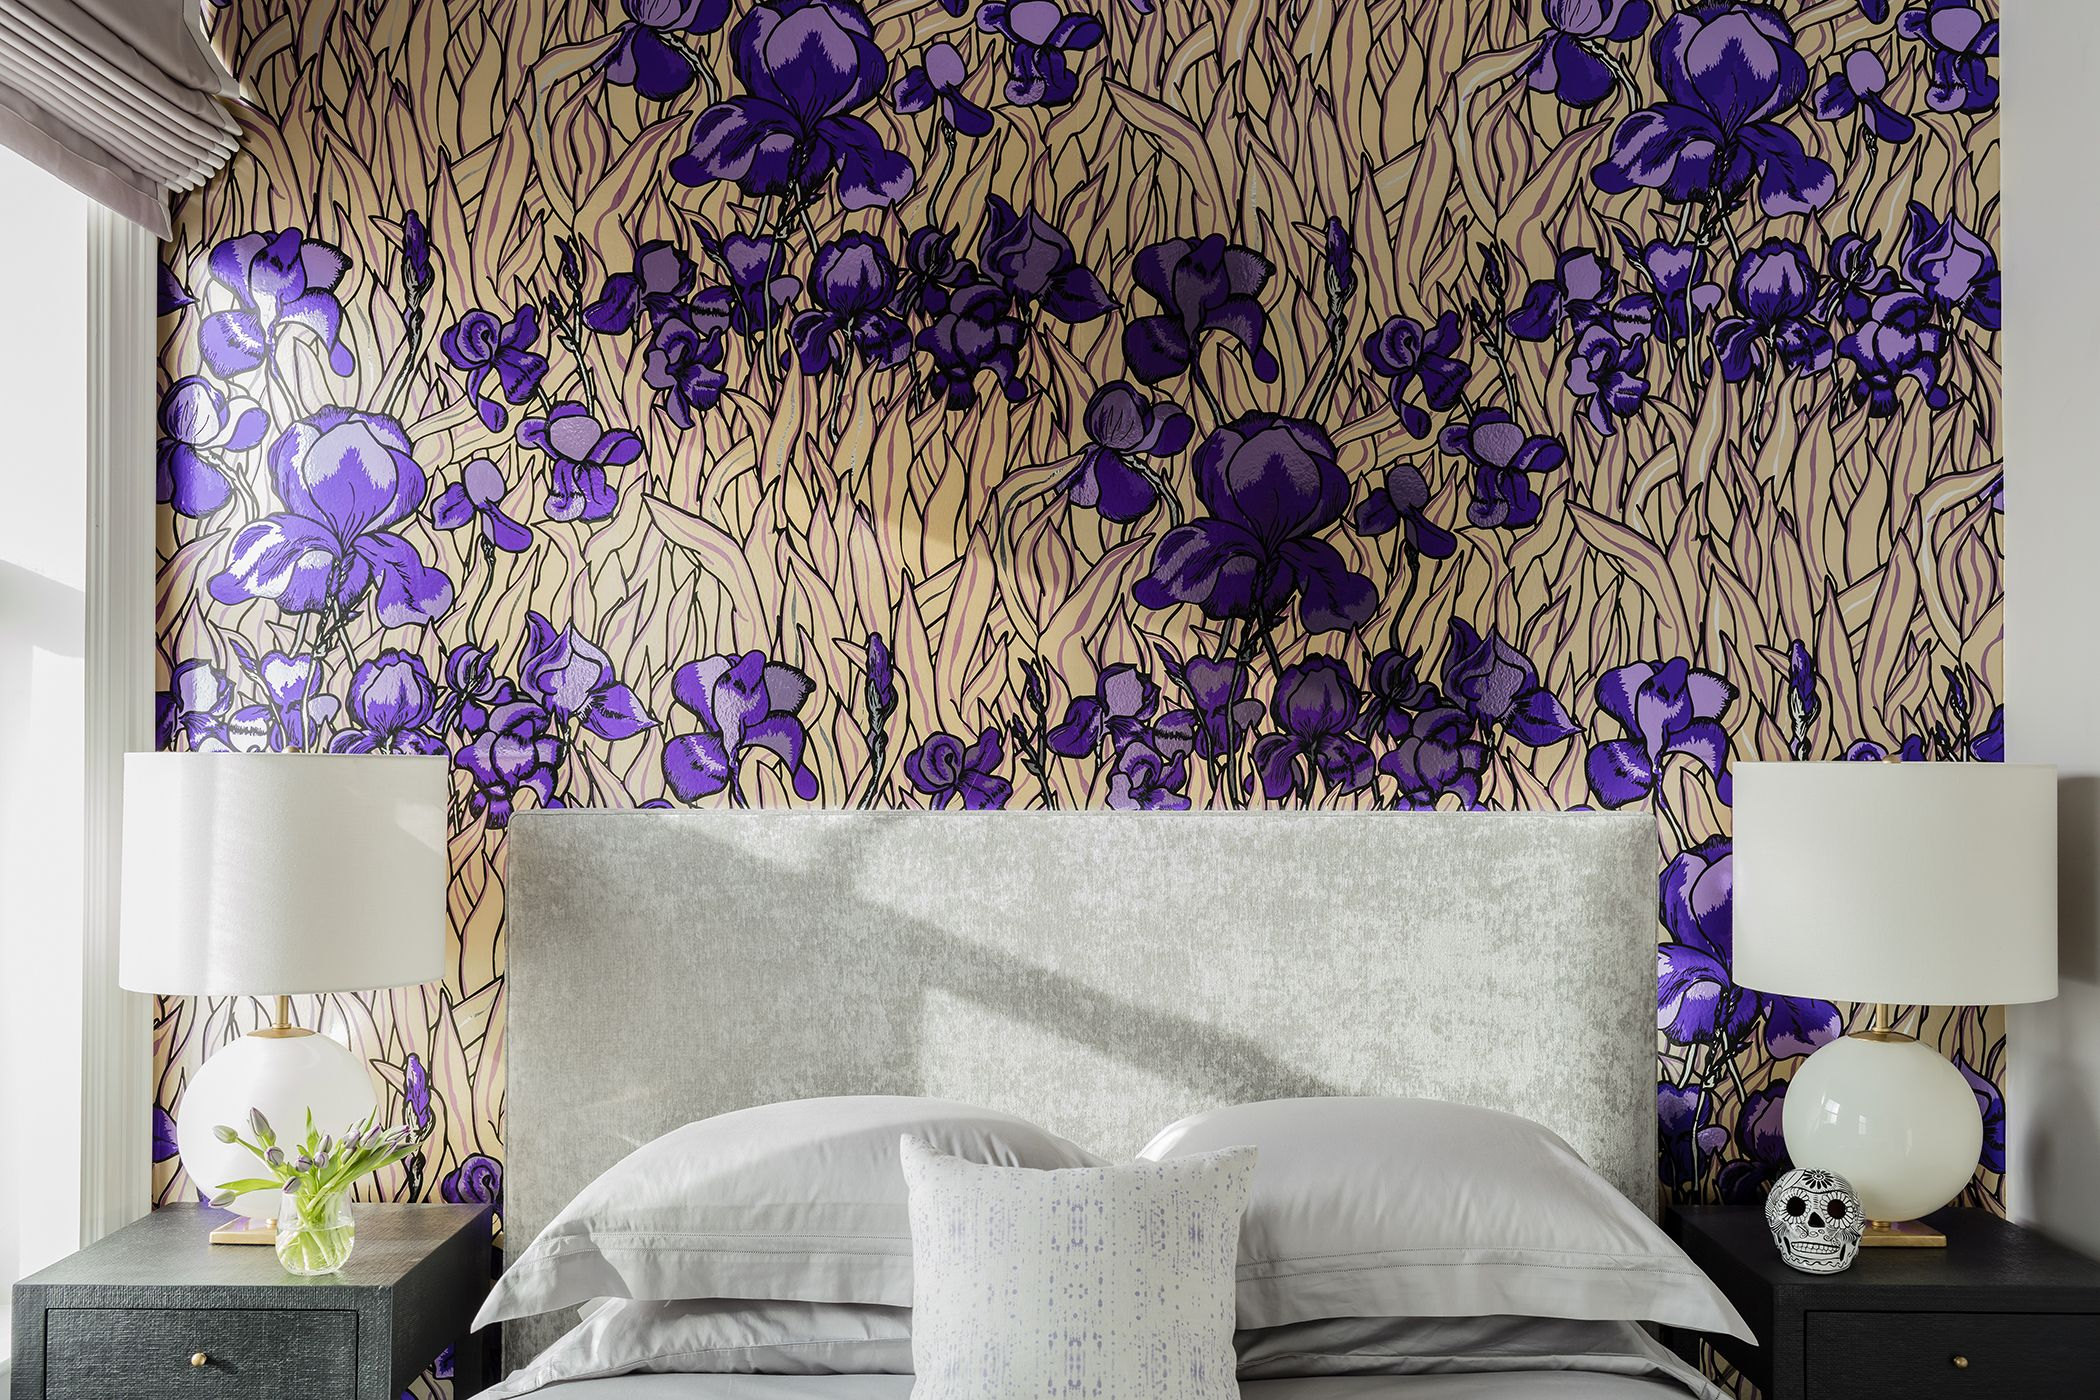 . 30 Bedrooms with Statement Wallpaper